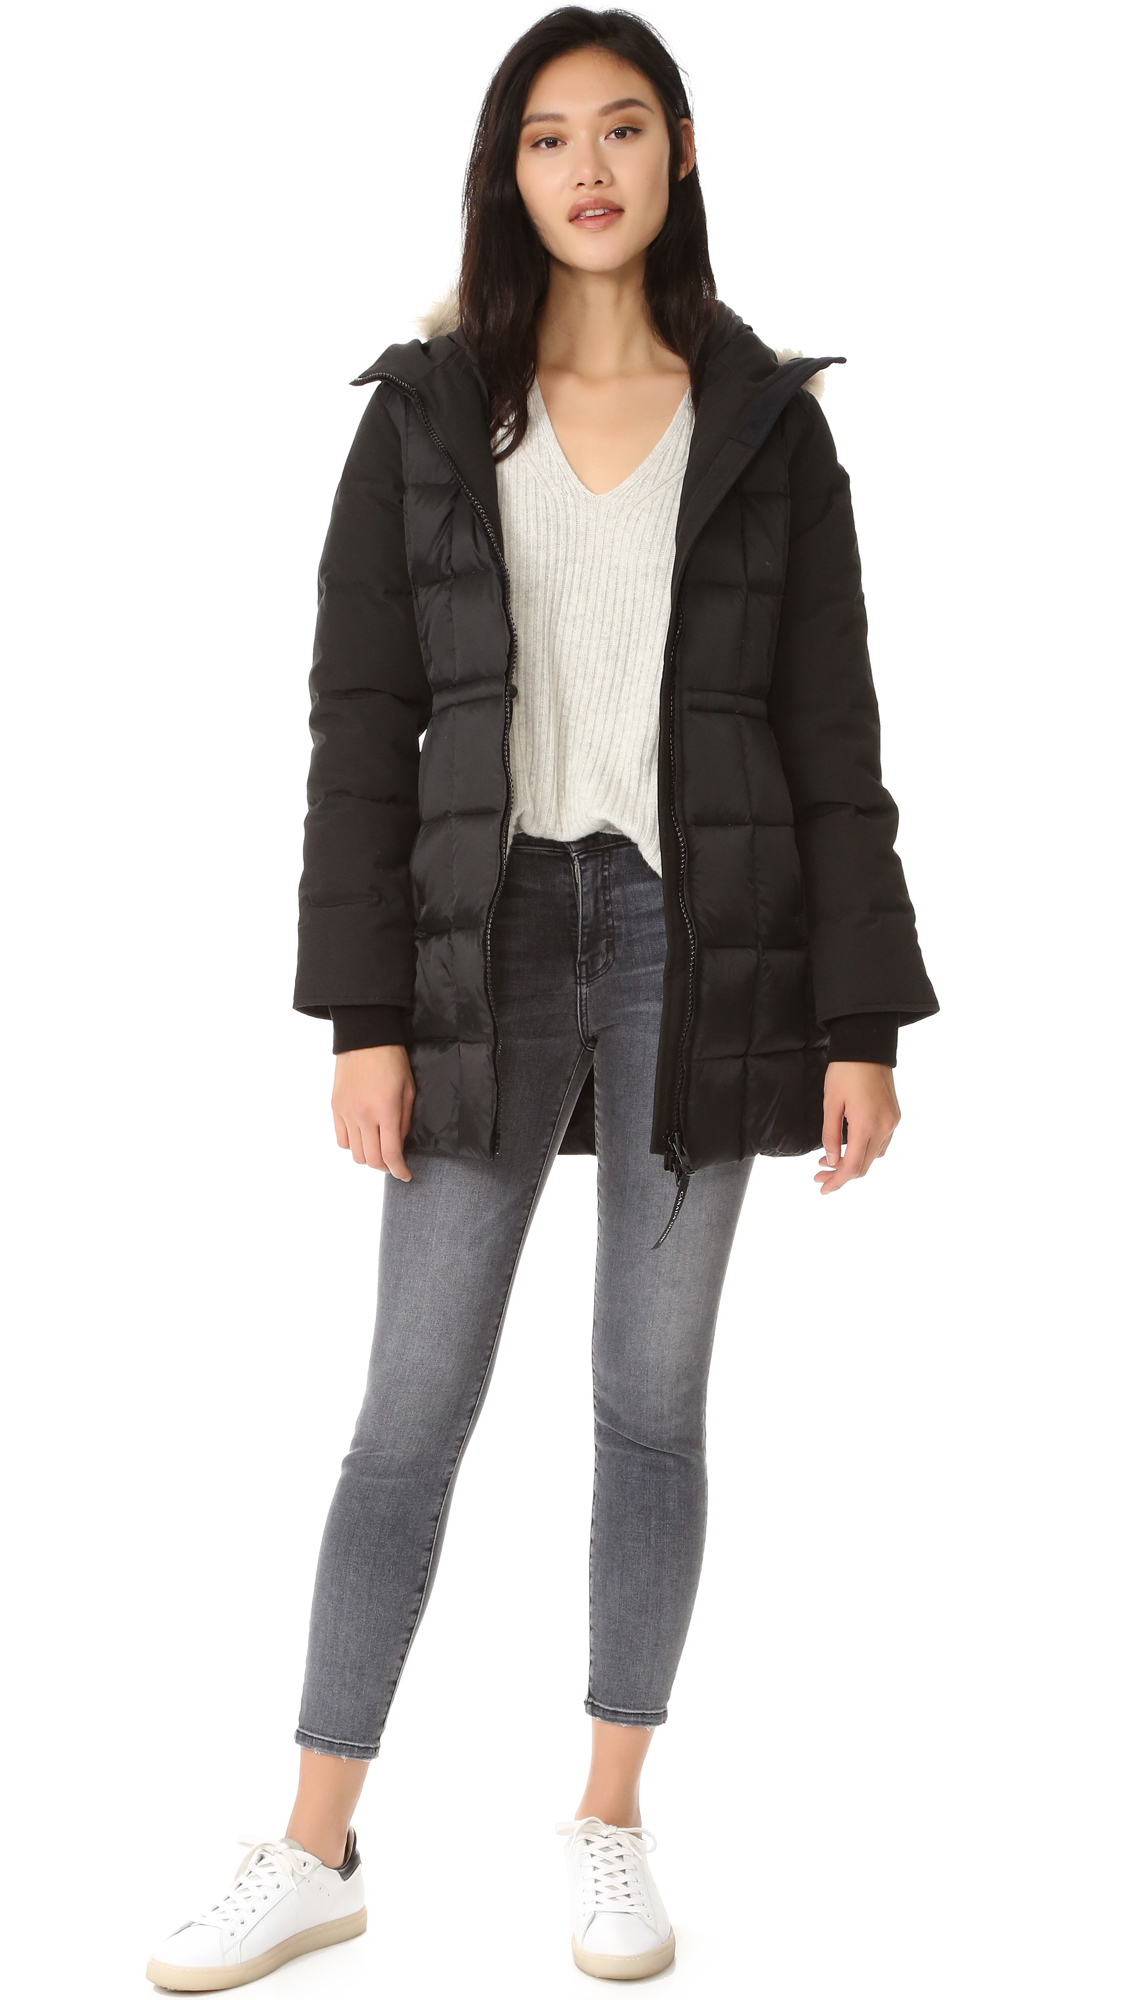 Canada Goose Beechwood Parka | SHOPBOP SAVE UP TO 25% Use Code: STOCKUP18